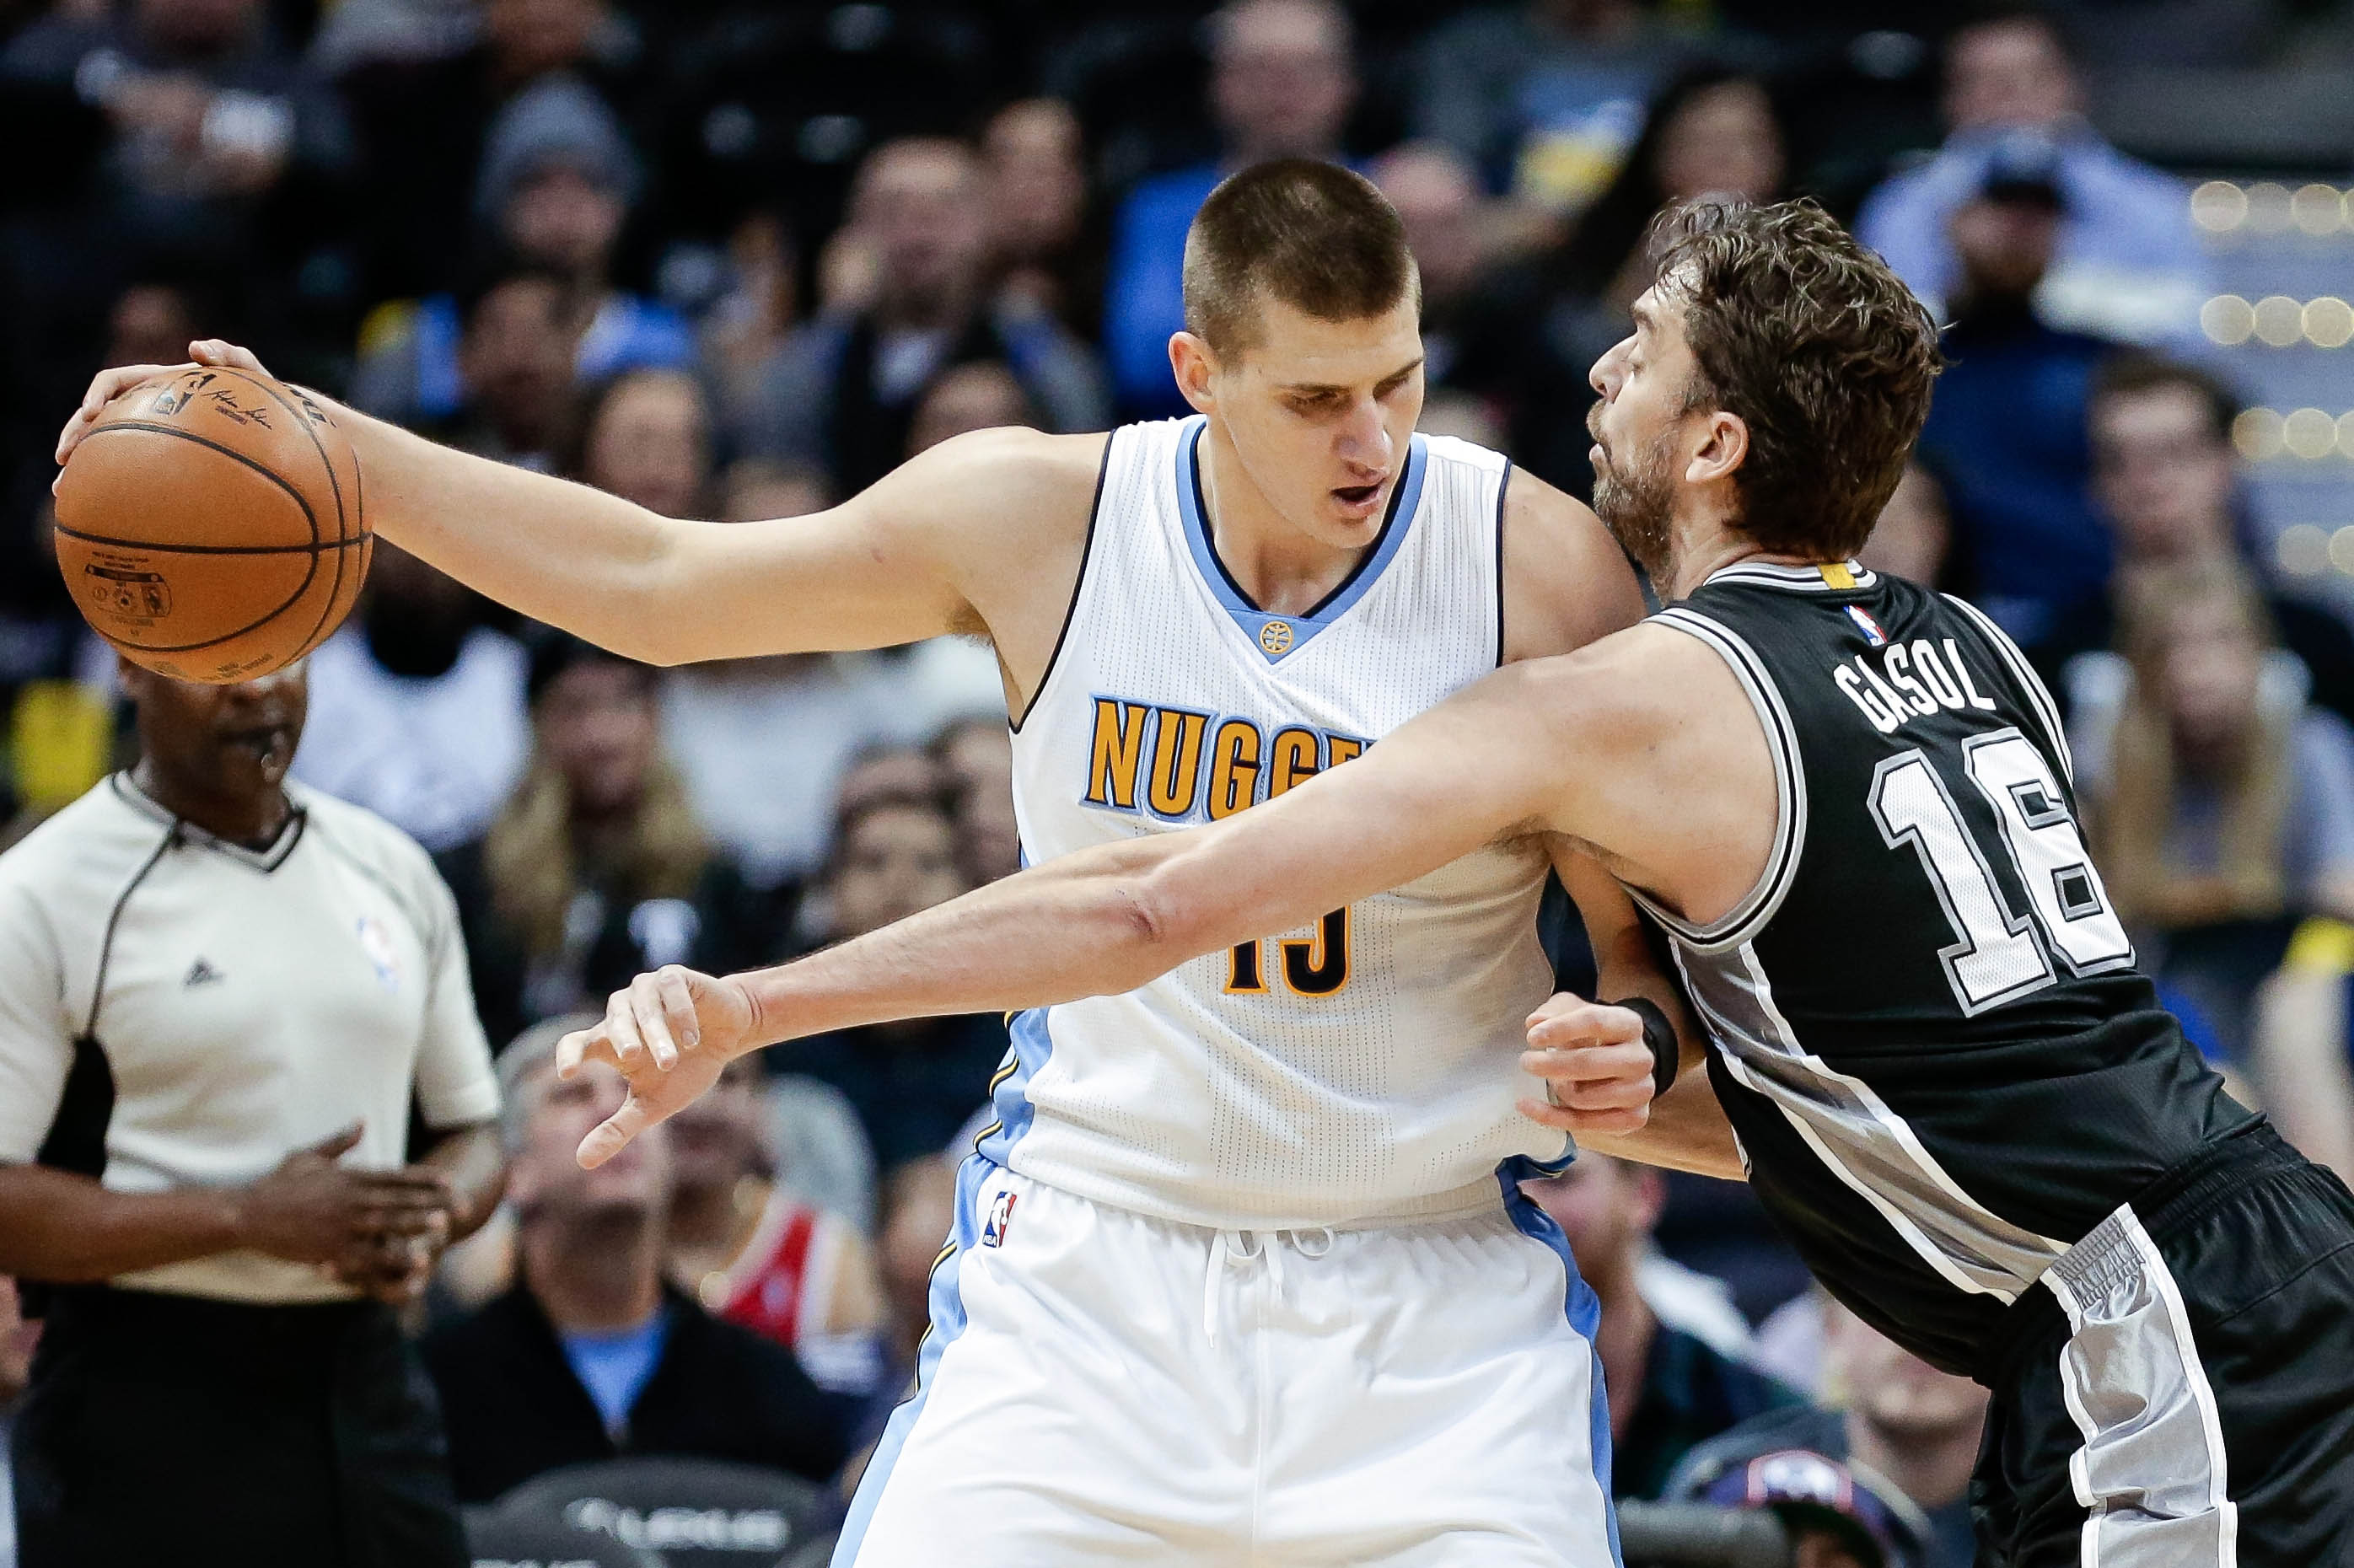 Jan 5, 2017; Denver, CO, USA; San Antonio Spurs center Pau Gasol (16) guards Denver Nuggets forward Nikola Jokic (15) in the first quarter at the Pepsi Center. Mandatory Credit: Isaiah J. Downing-USA TODAY Sports